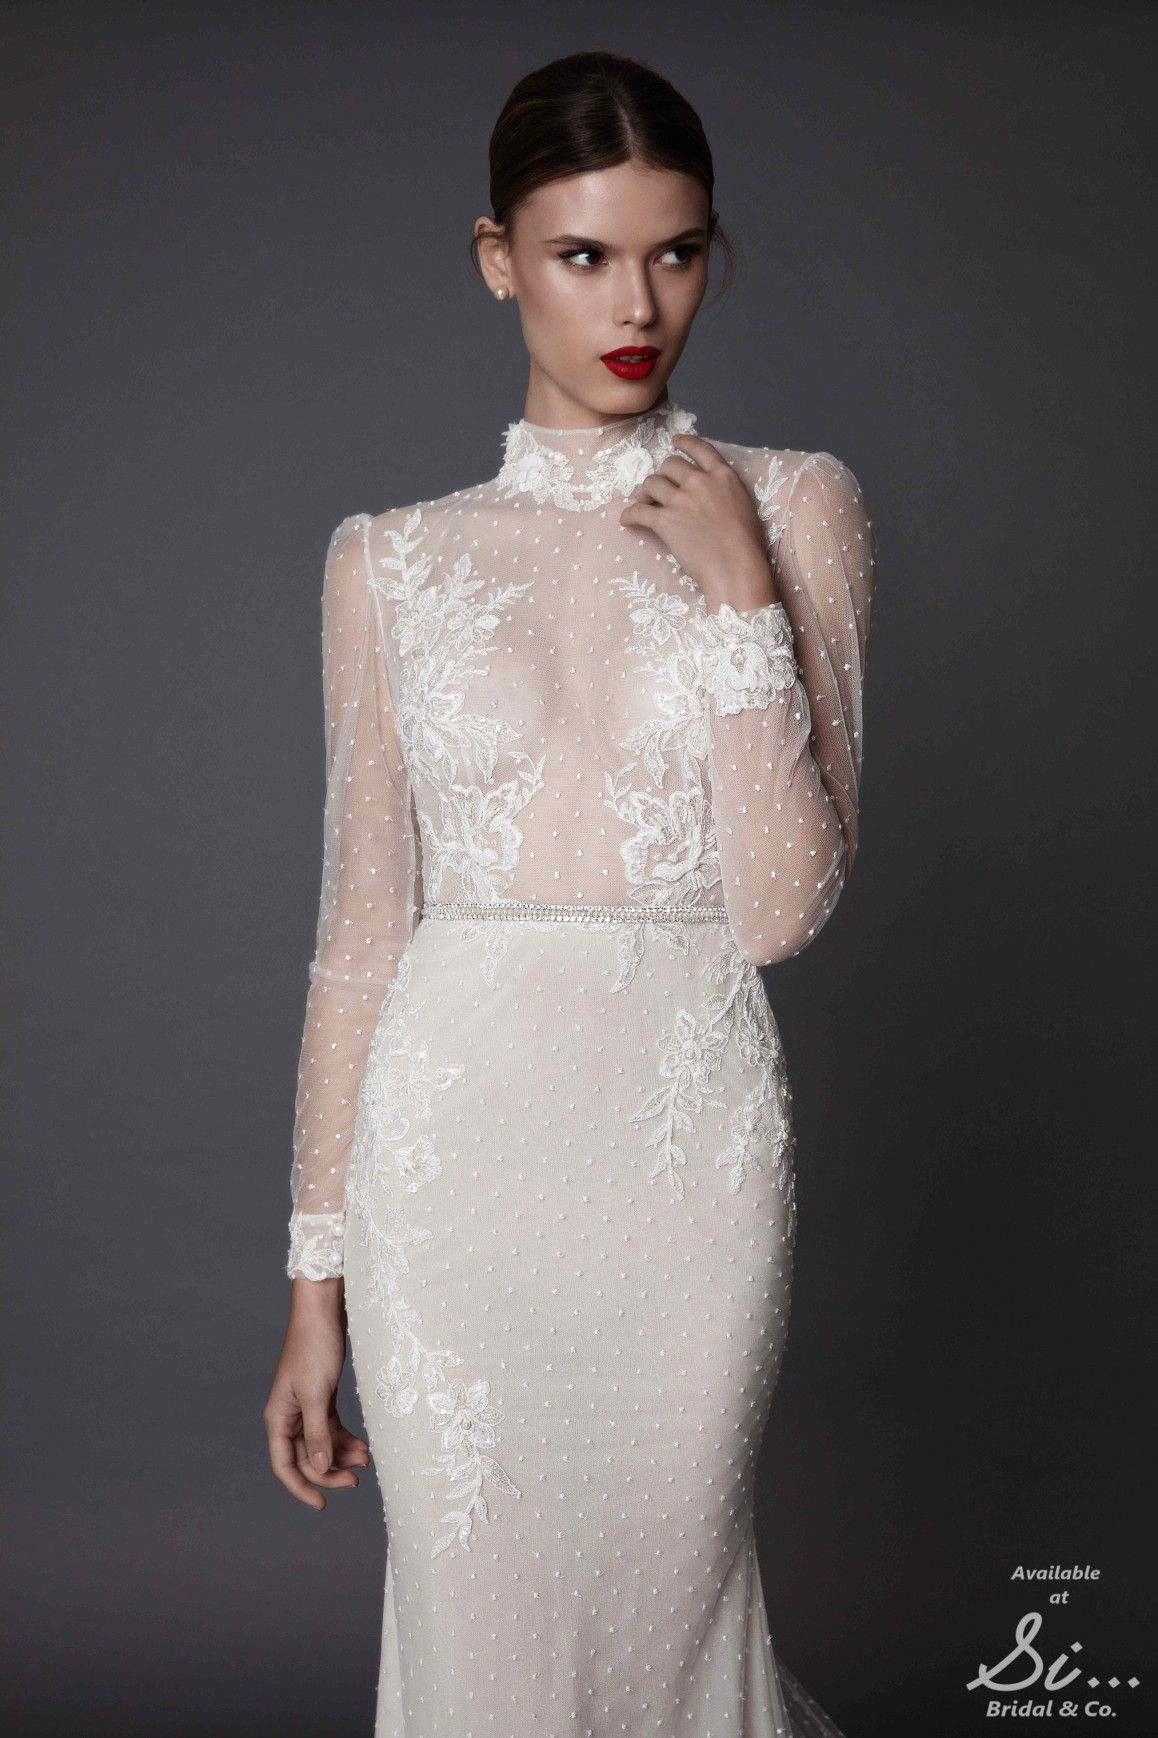 name brand wedding dresses Amadea Muse by BERTA Brand new luxury diffusion line by the biggest name in